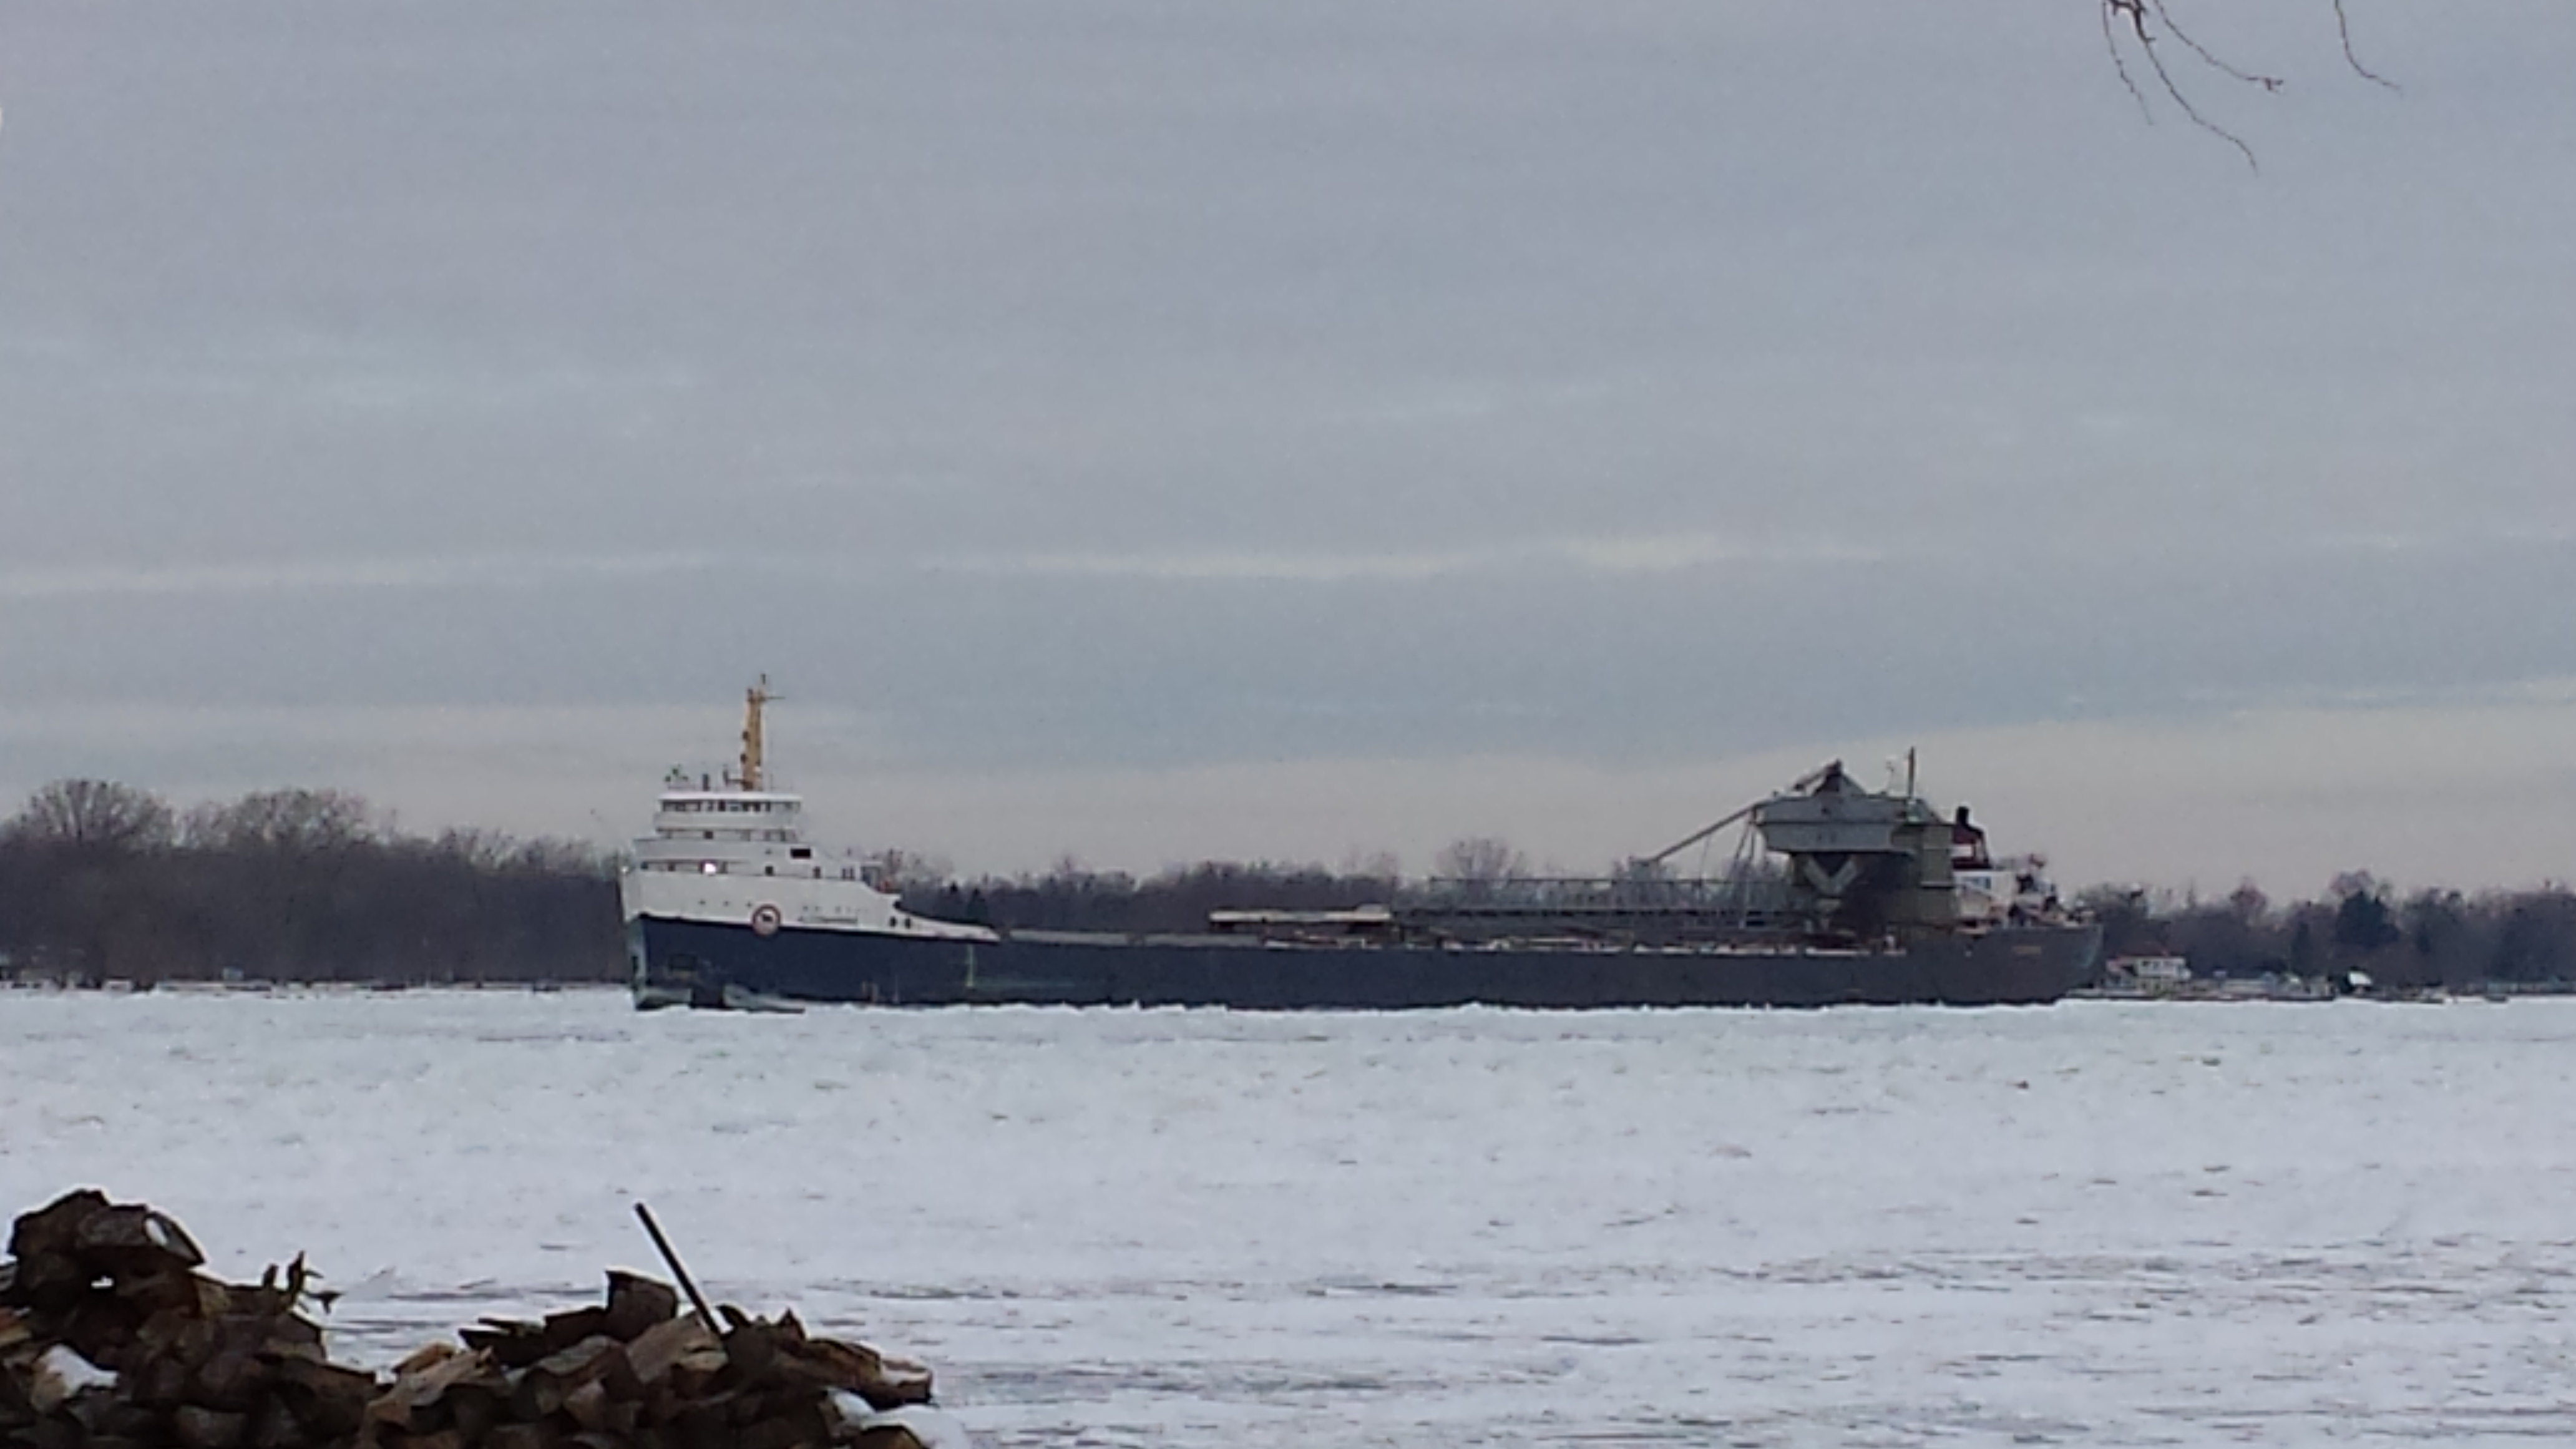 A number of freighters became stuck on the St. Clair River near Port Lambton, January 11, 2015. (Photo courtesy of Mr. Tractors)